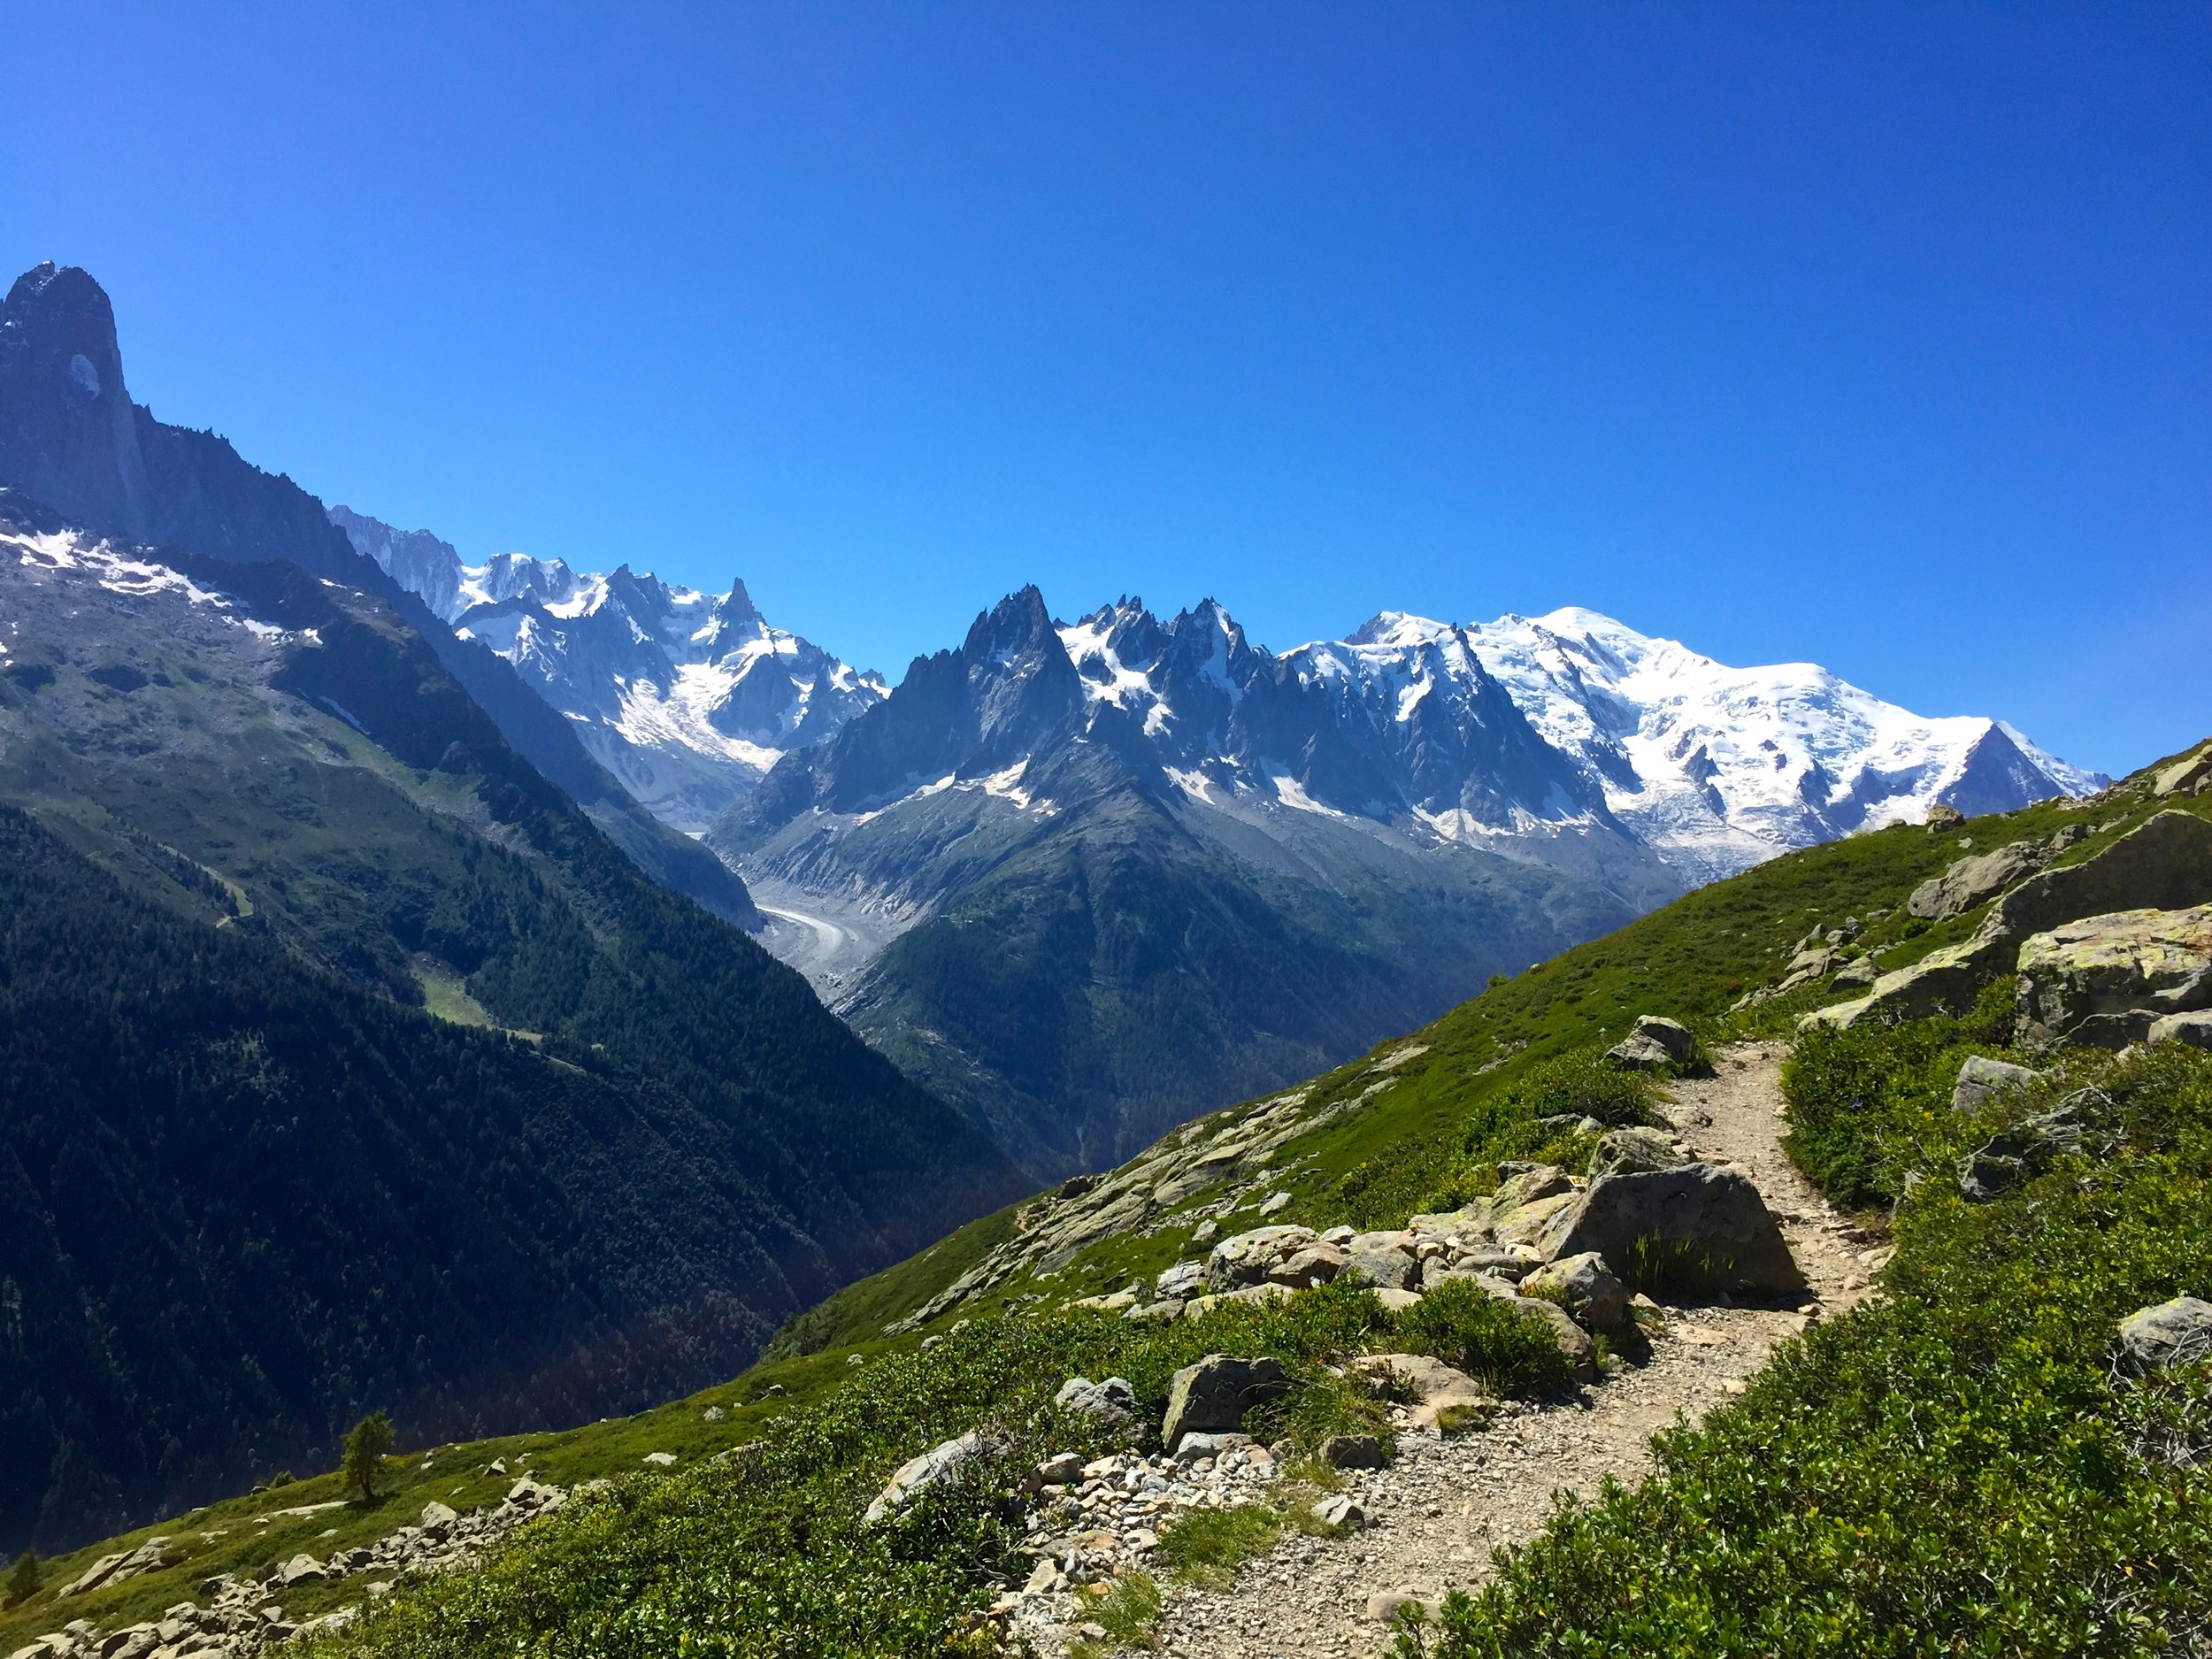 Mont Blanc on the right. Chamonix sits in the valley below.